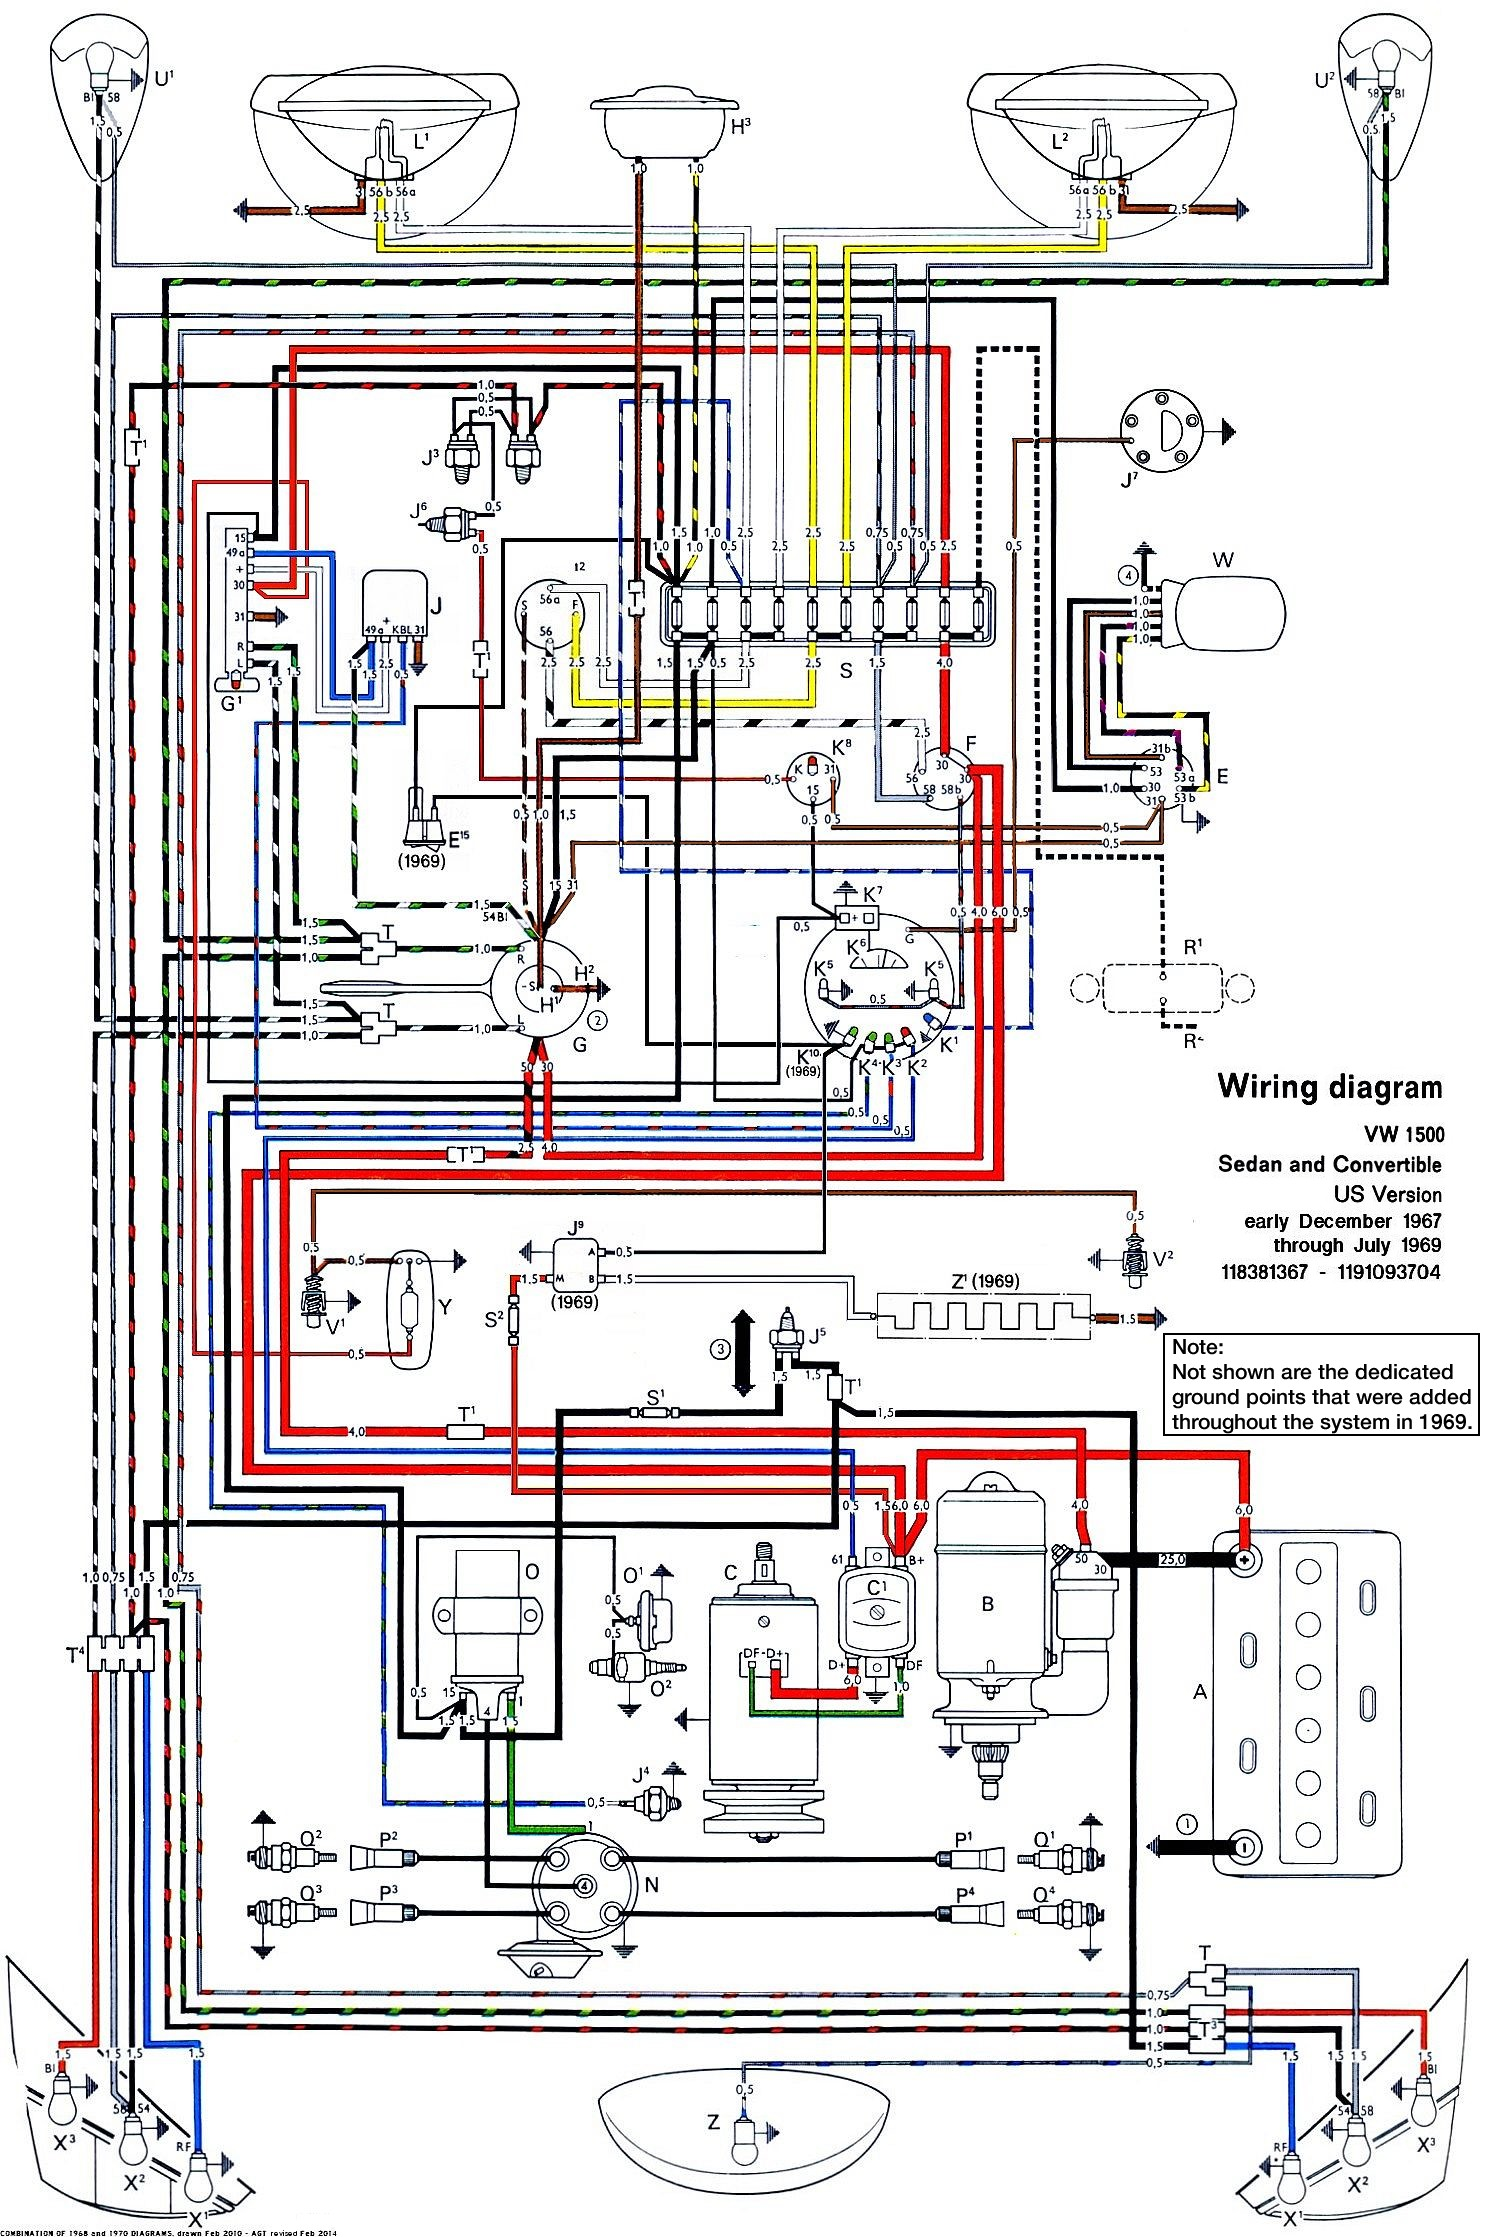 Wiring Diagram For 1975 Vw Beetle : Rewiring a classic vw bug yahoo answers